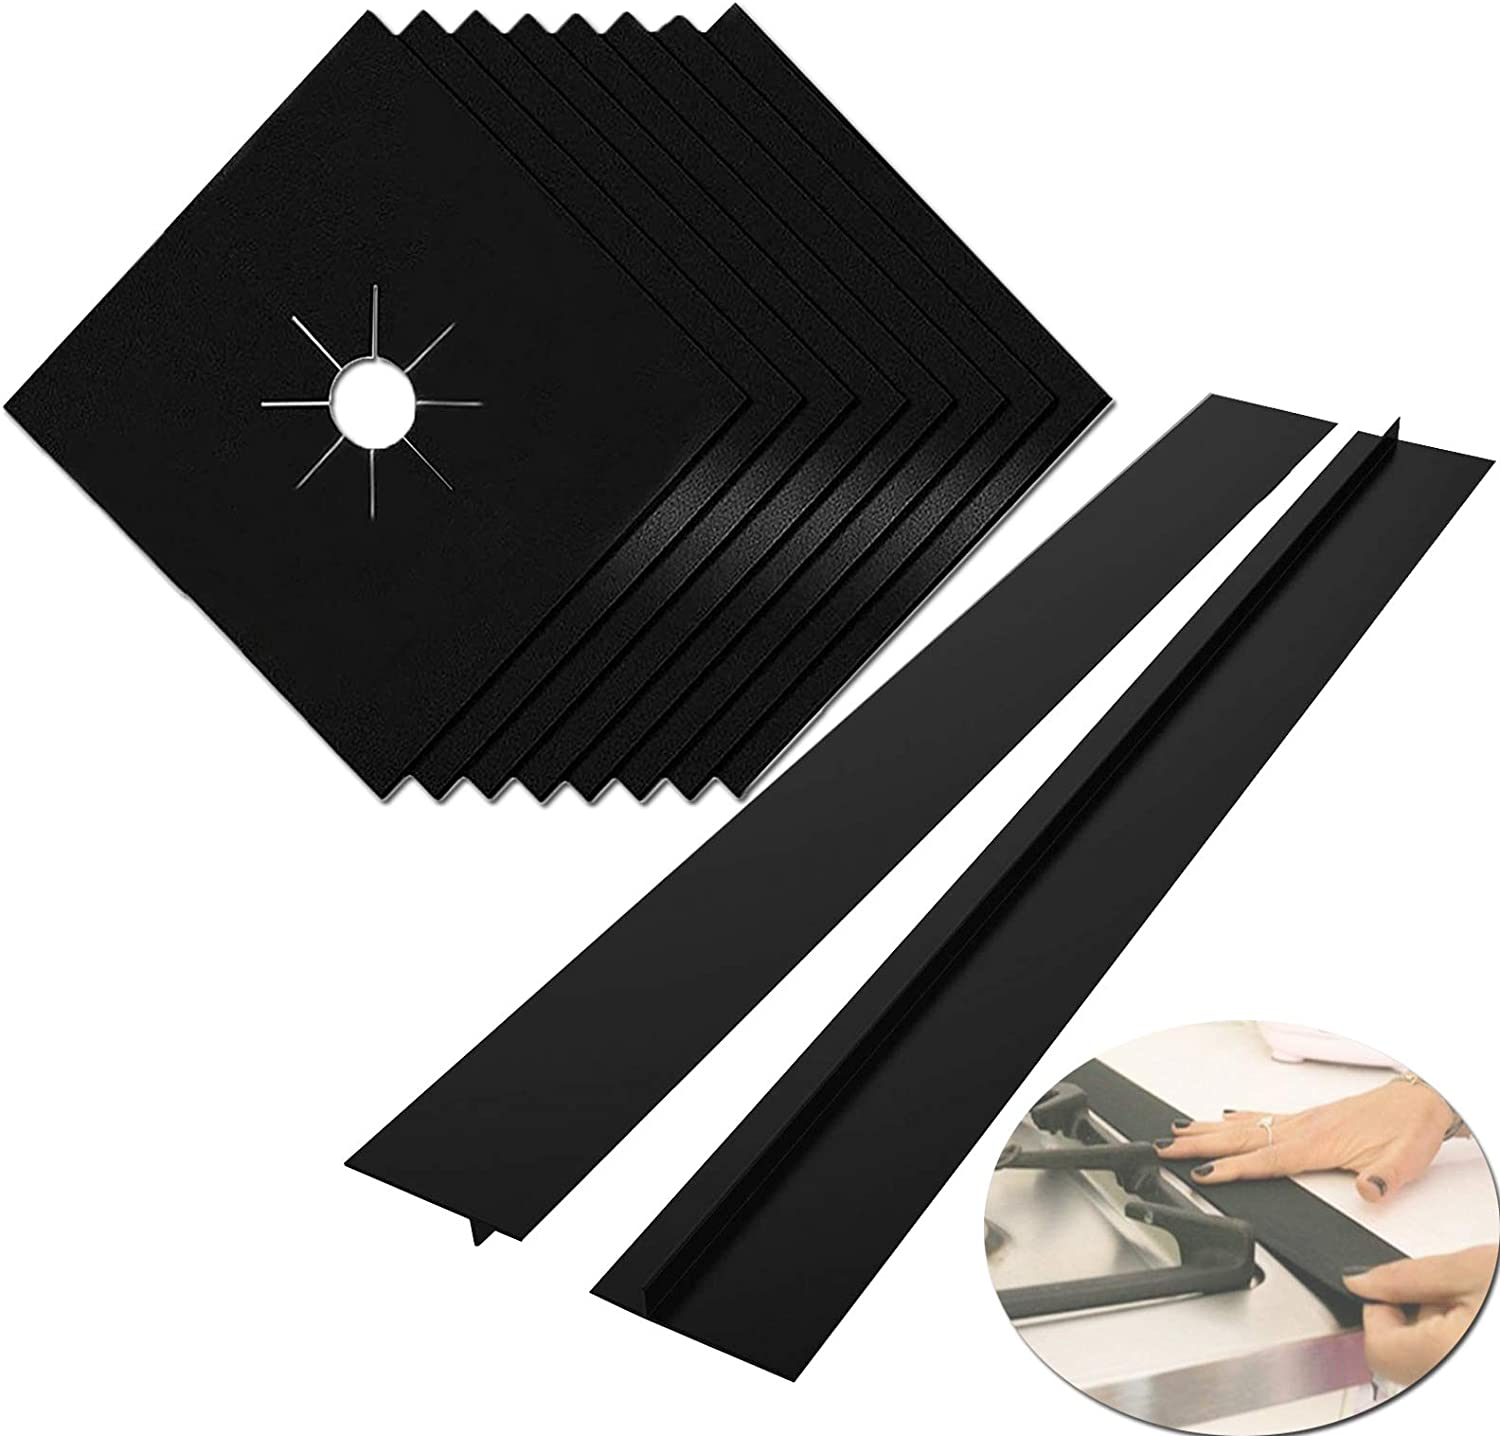 Circular 6 Pack Gas Stove Burner Covers-Upgraded Thicken Reusable Non-Stick Stove Burner Liners,Include stove brush,Circular